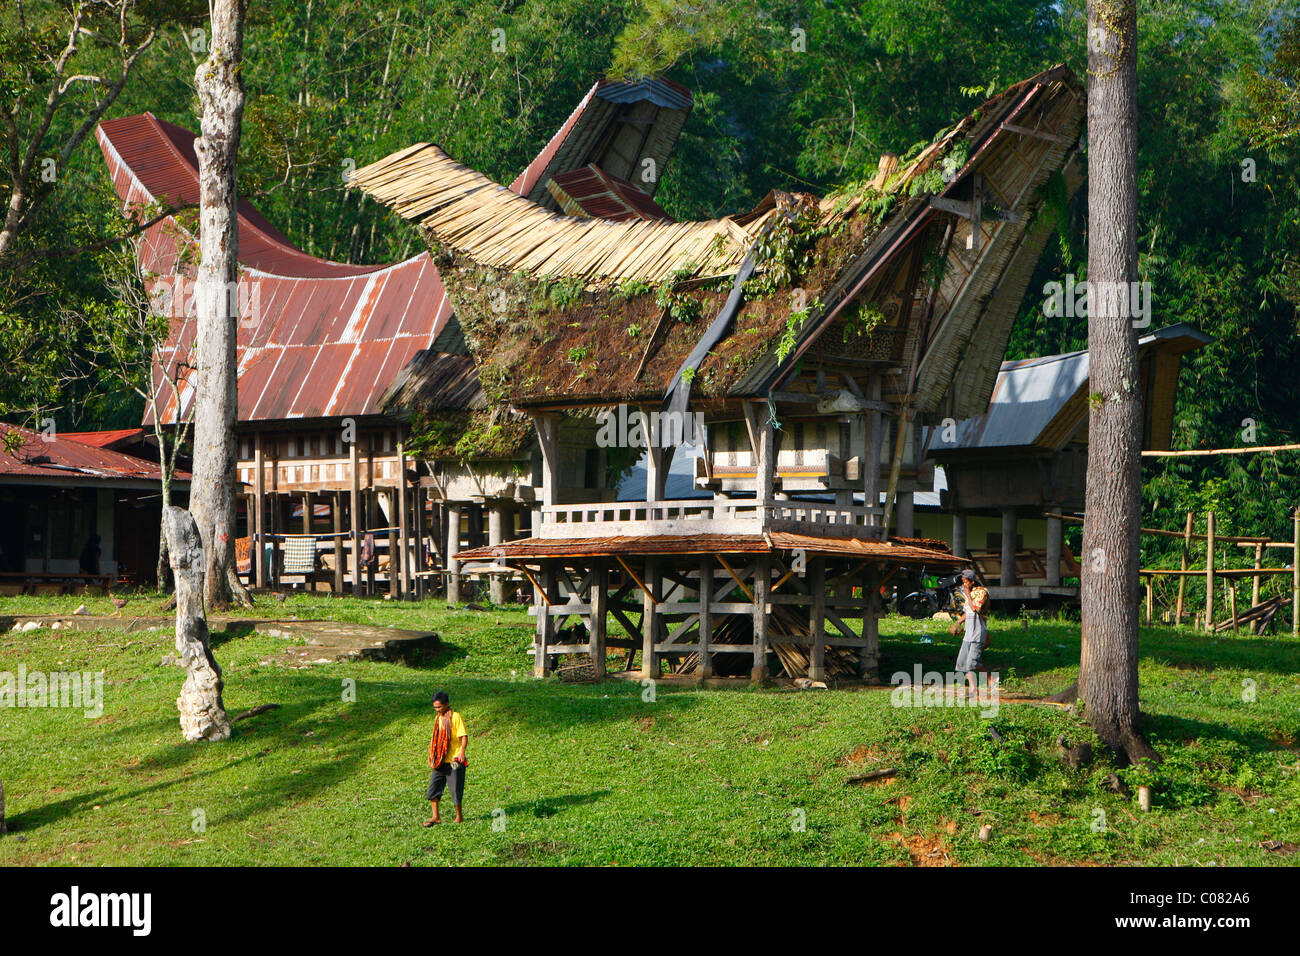 Typical Toraja house, Kete Kesu, Toraja culture, Sulawesi, Indonesia, Asia - Stock Image